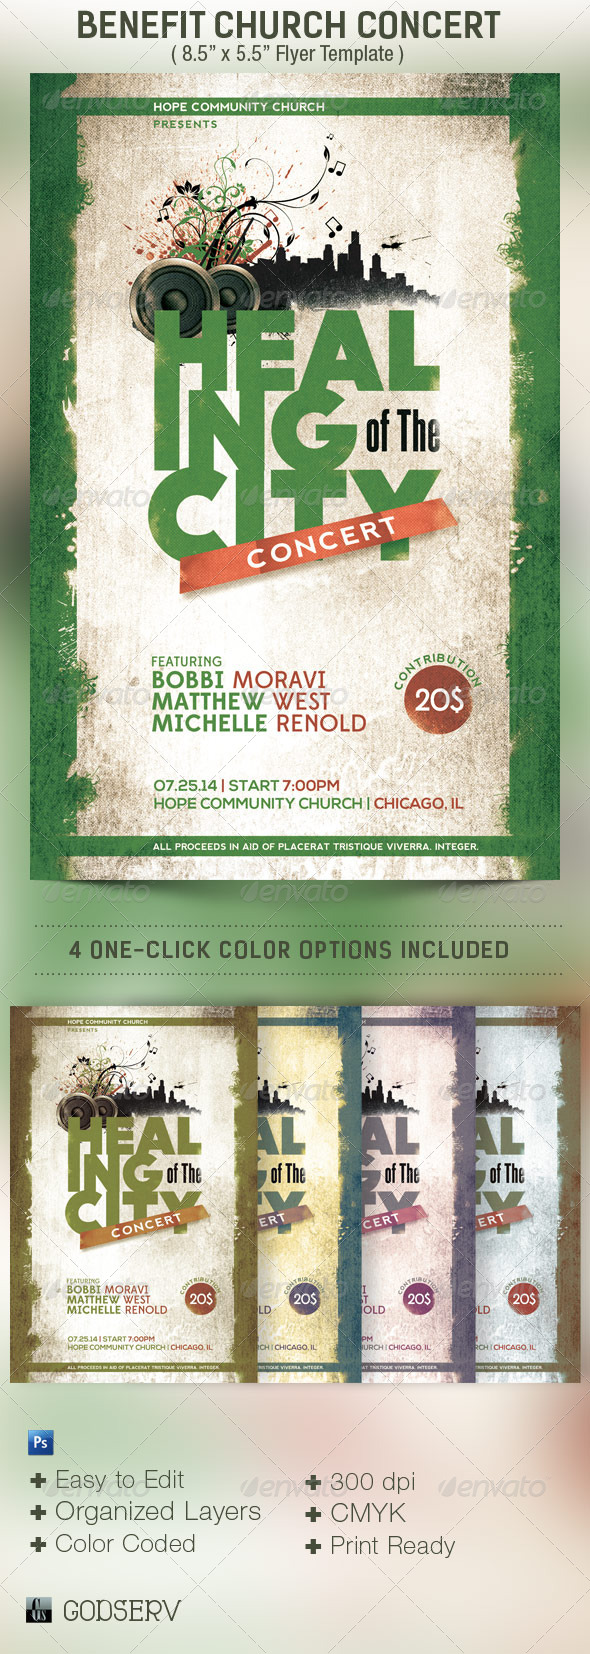 Benefit Concert Church Flyer Template - Church Flyers